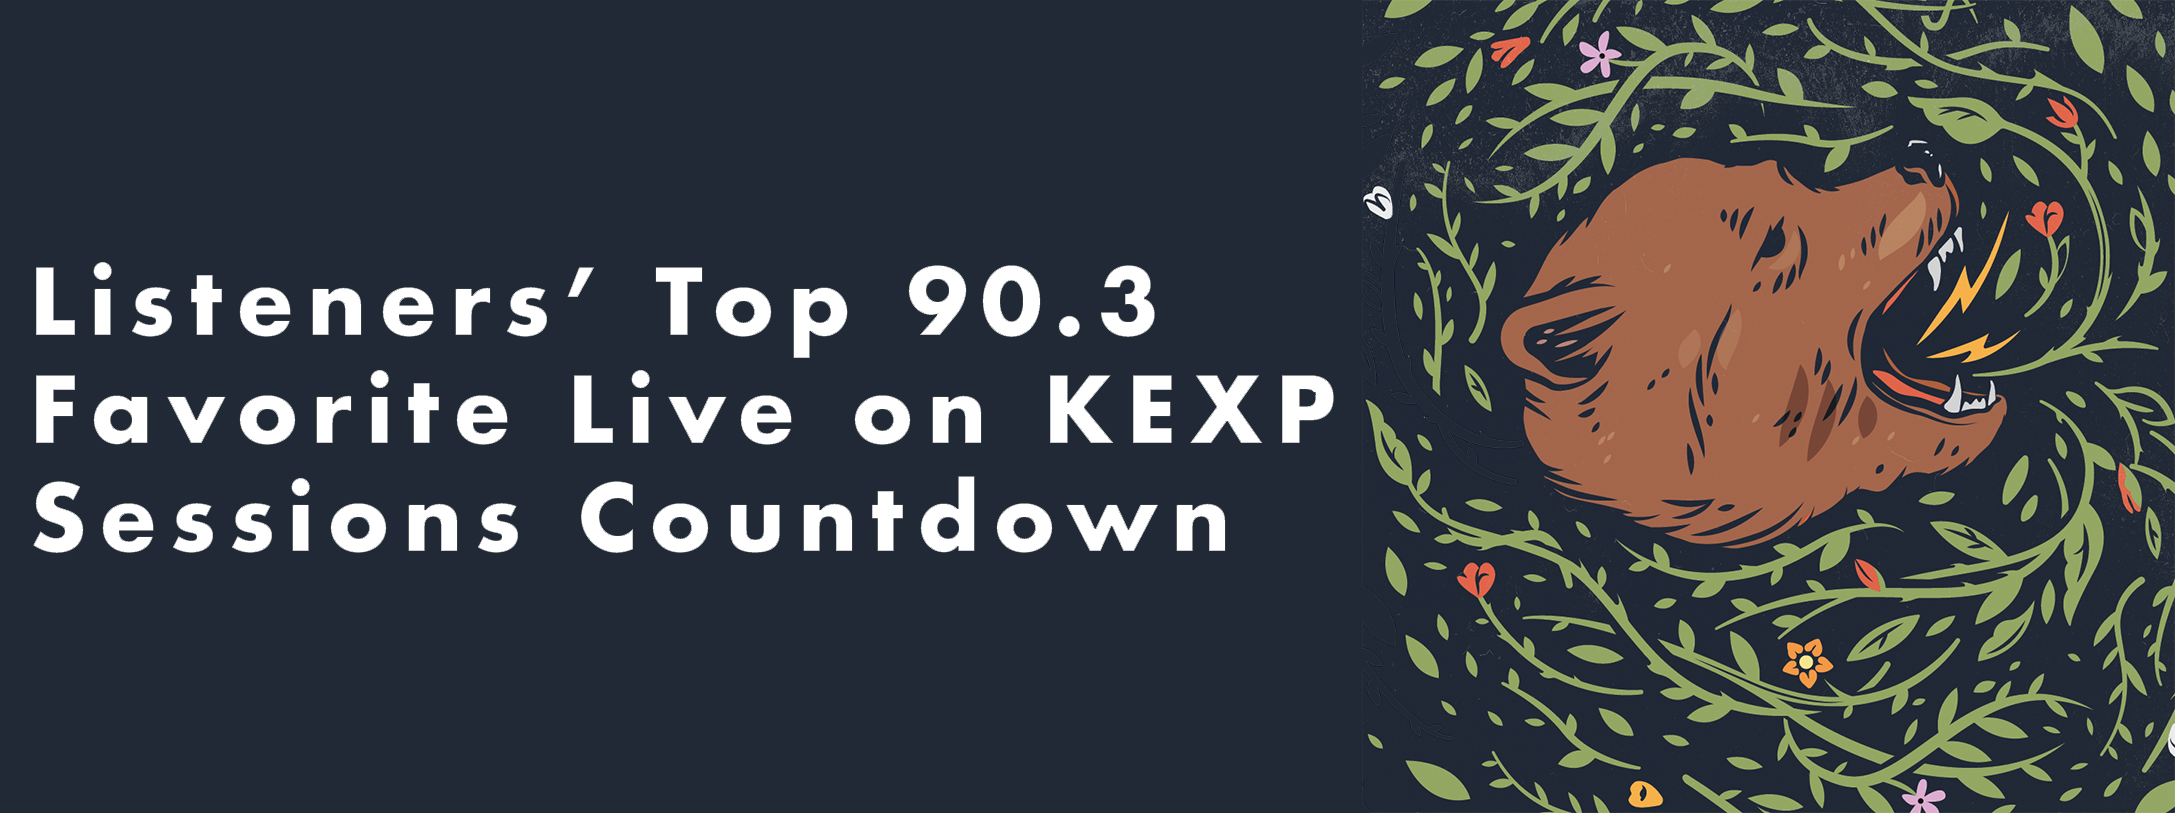 top 90 3 live on kexp countdown 02.png